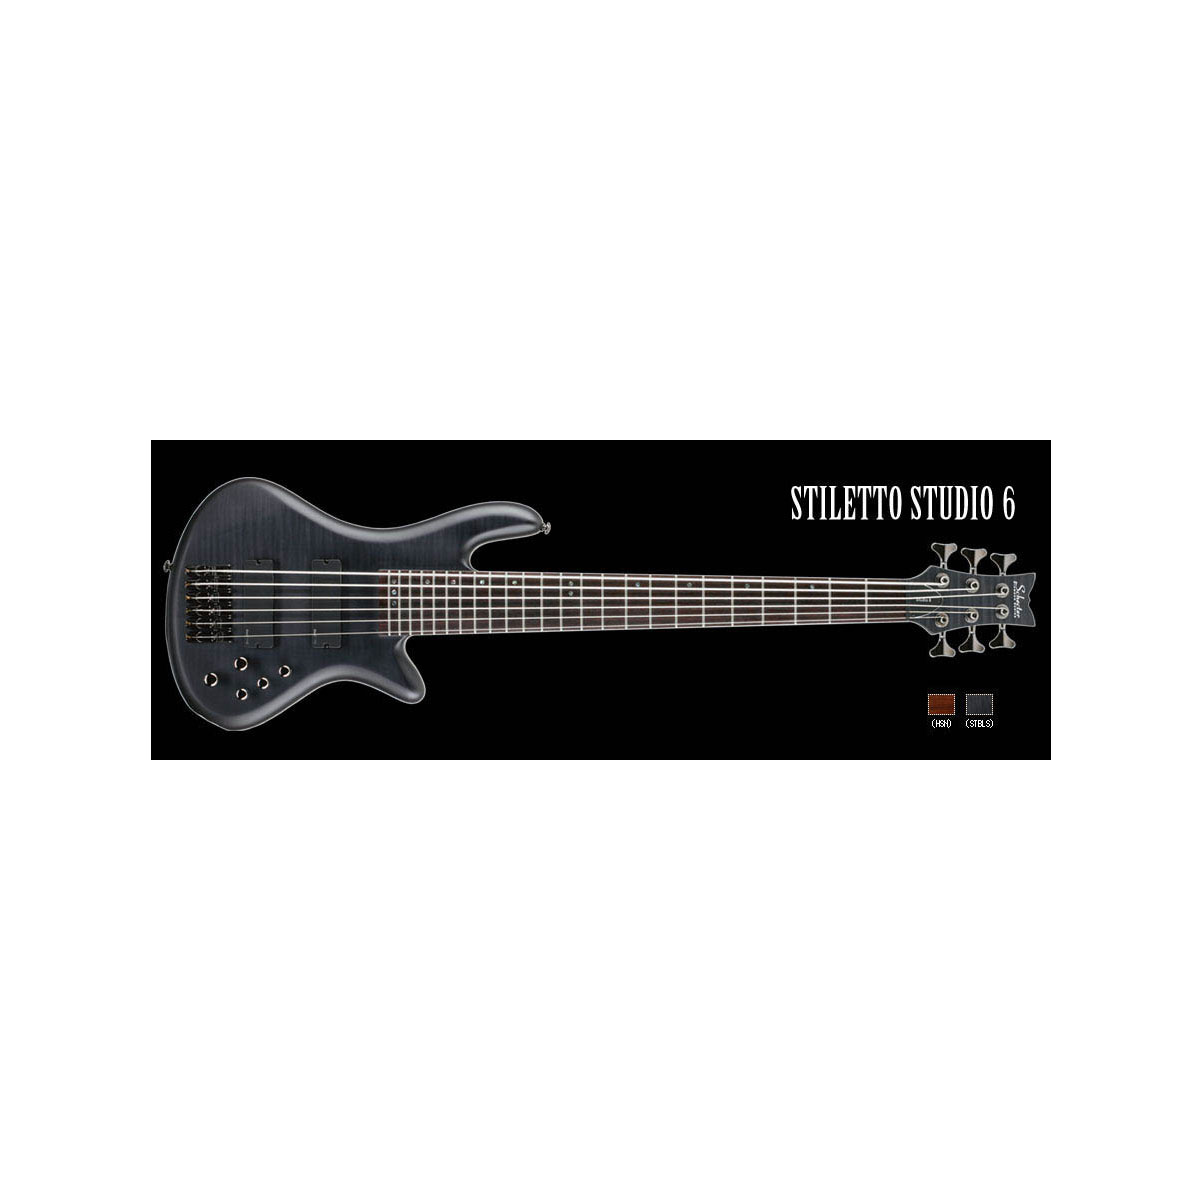 Schecter / STILETTO STUDIO 6 See Thru Black Satin シェクター 6弦ベース 【お取り寄せ商品】